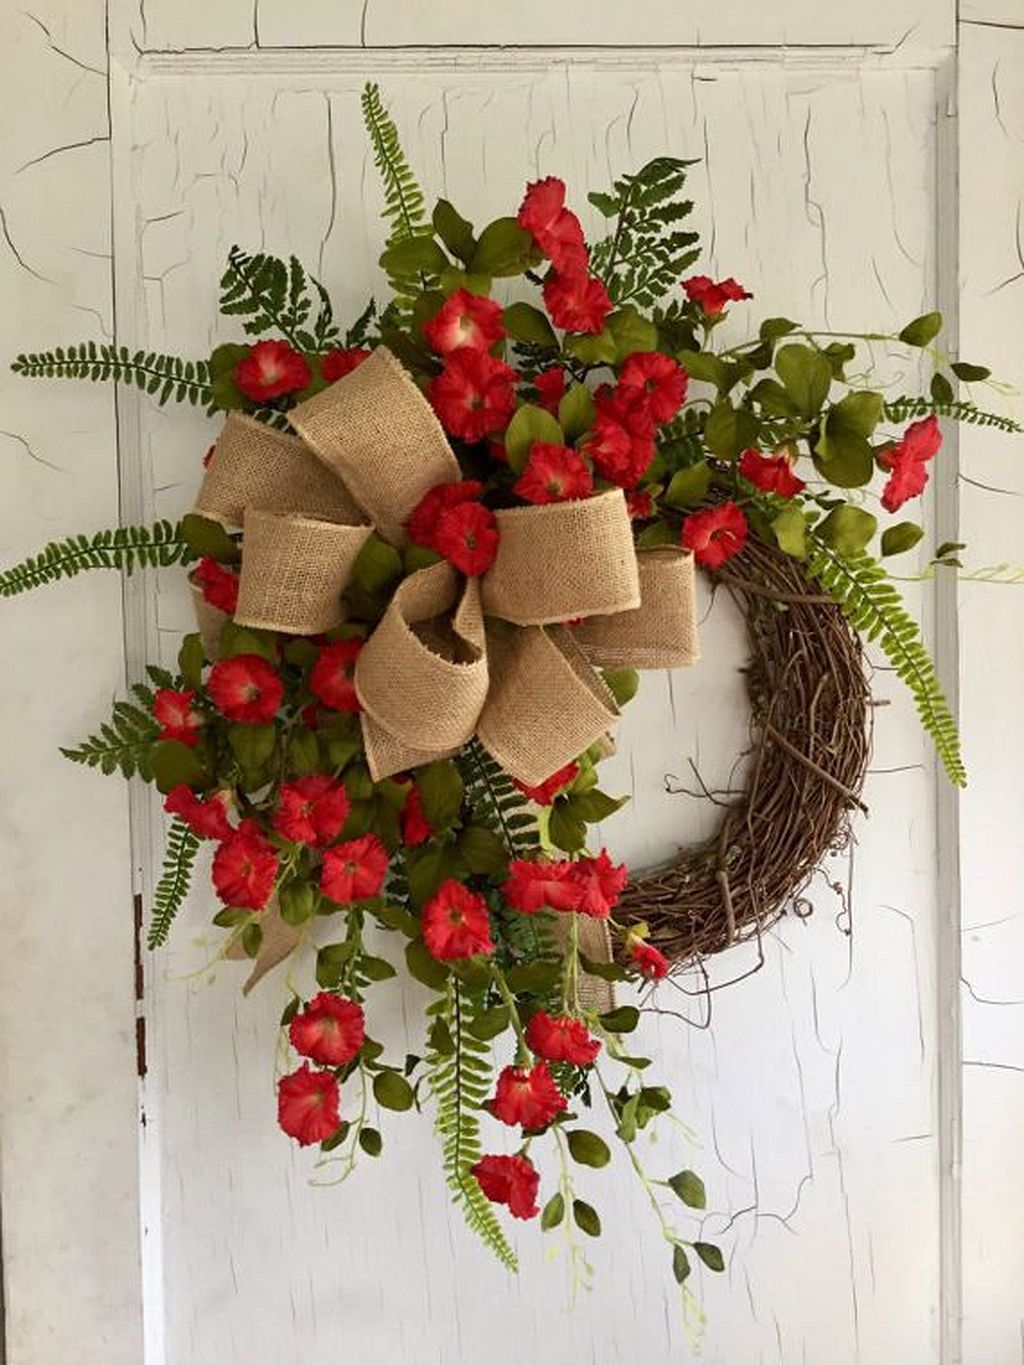 interior and exterior decoration winter wedding entrance decoration spring door decoration soimmer Country house door wreath vintage gift idea autumn shabby